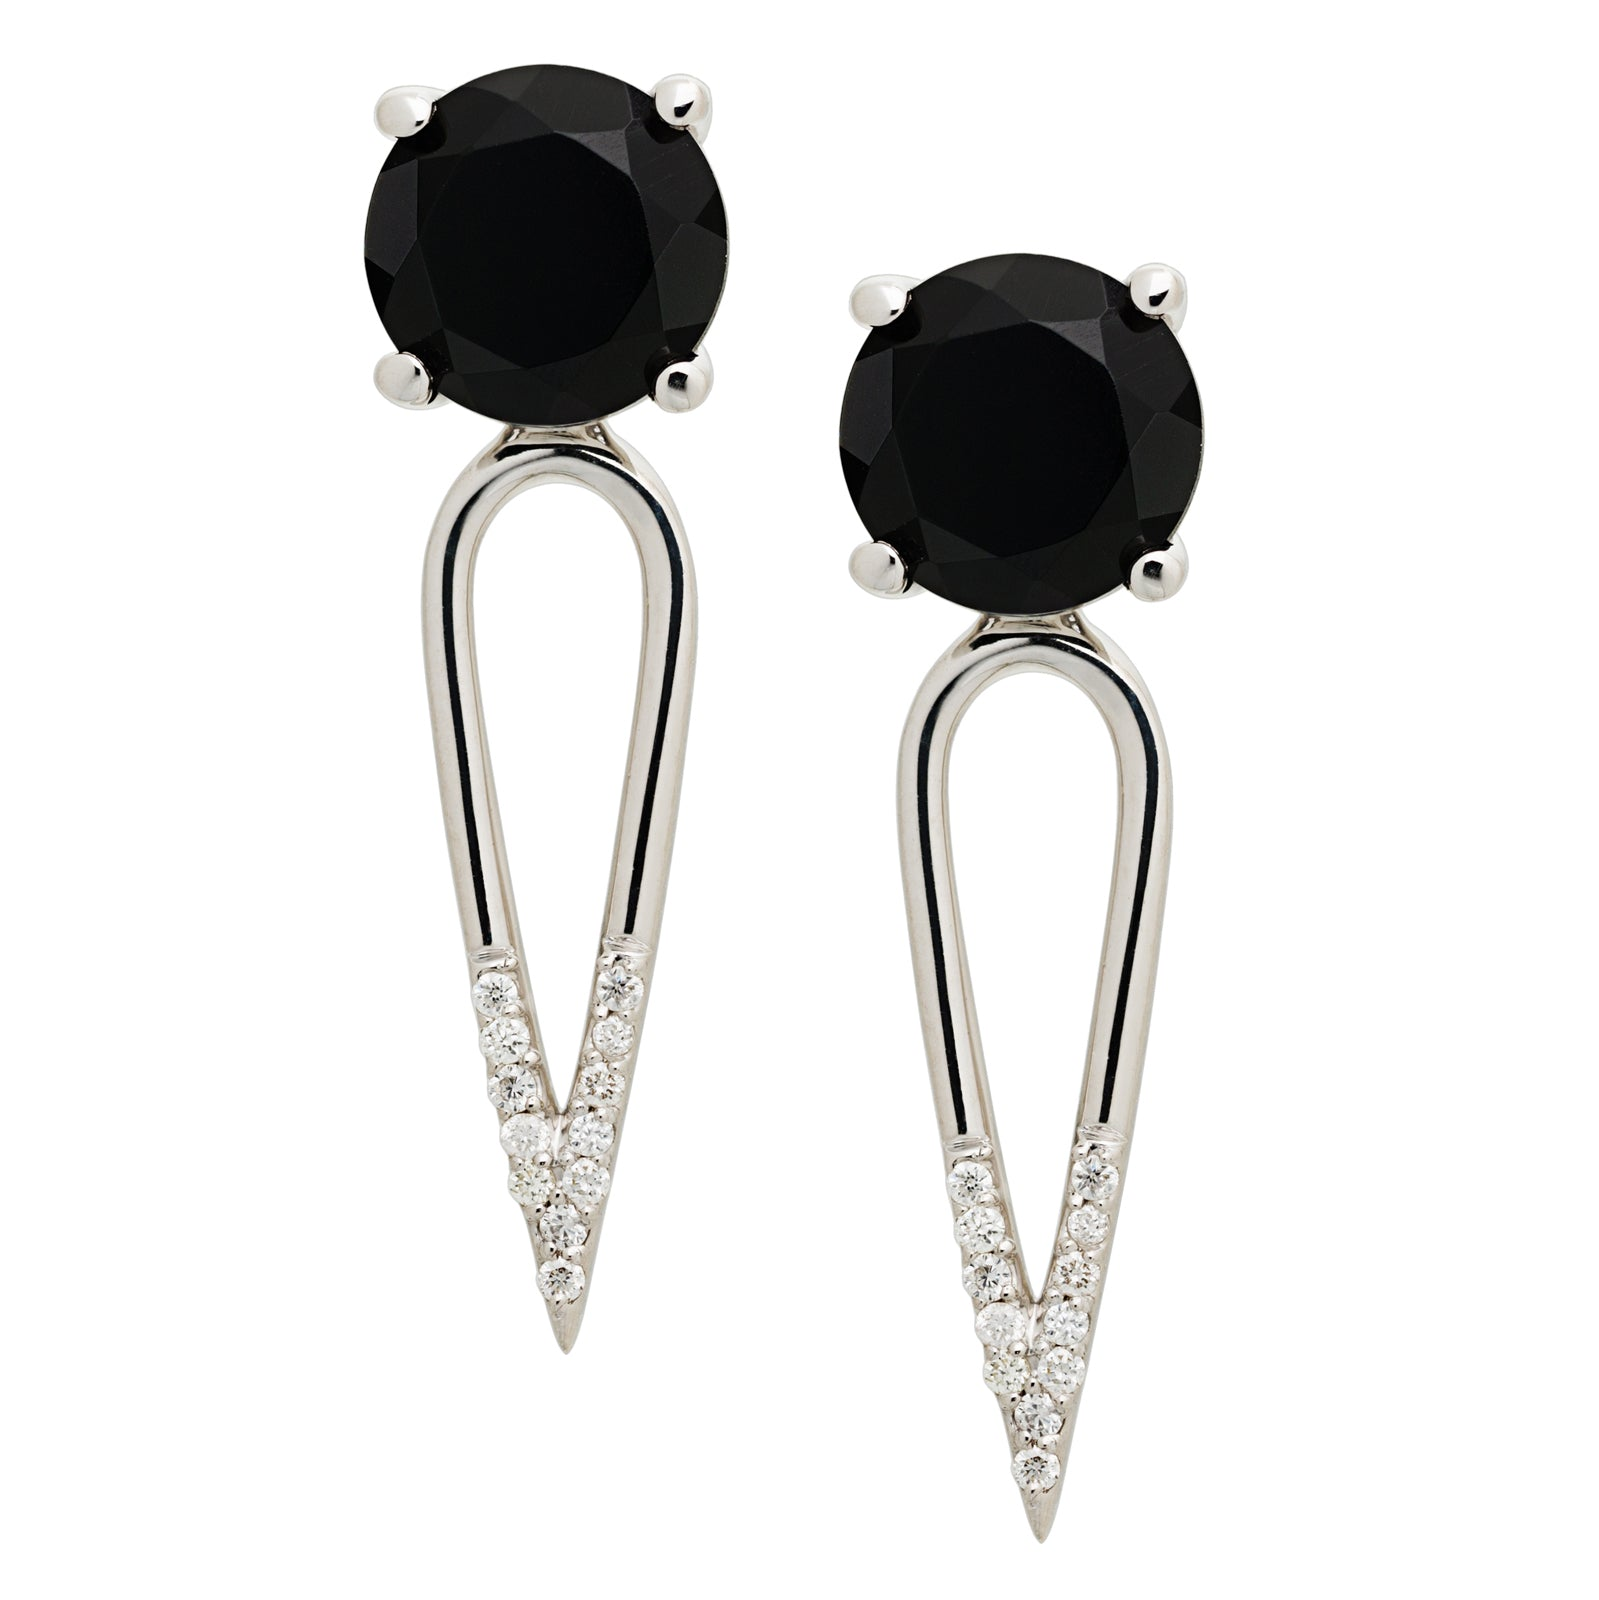 Irini Black Onyx gem stone diamond dipped dagger, sterling silver earrings are edgy yet elegant and the perfect gift, made in nyc